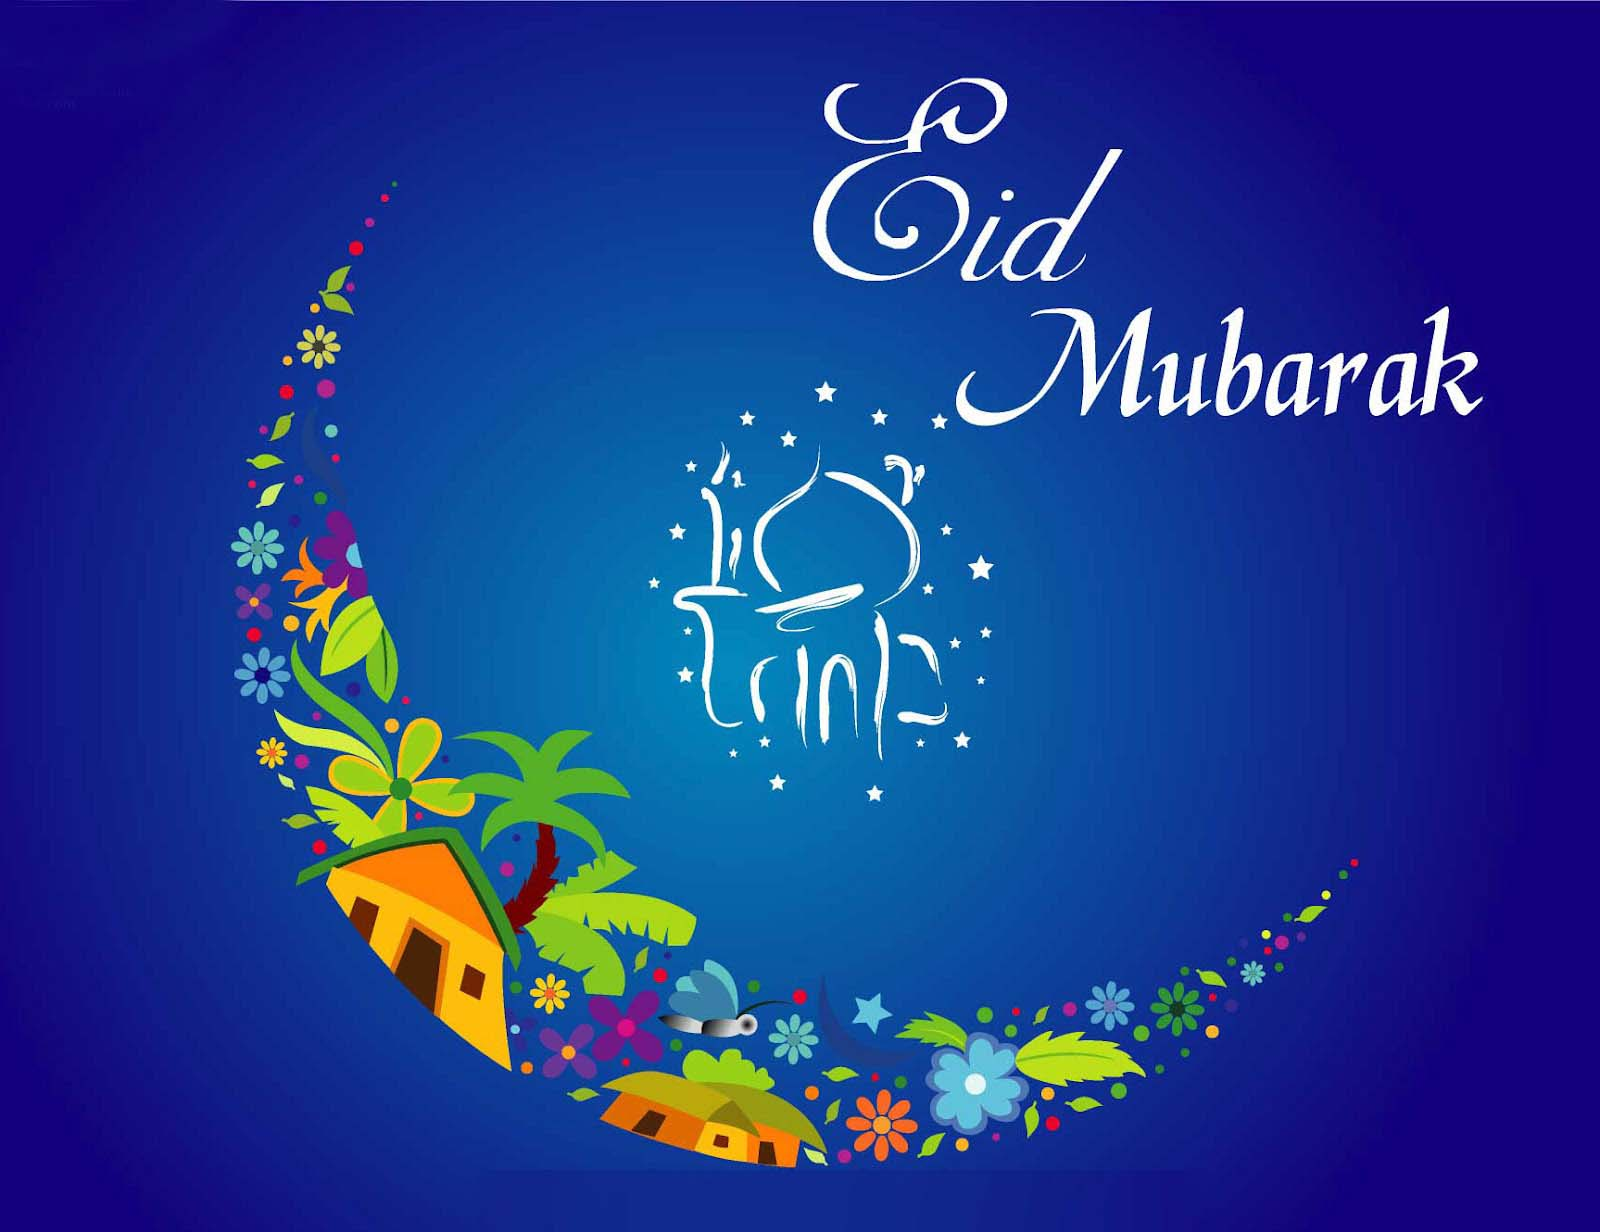 Eid mubarak 2015 photos - Download Eid Mubarak Images For Whatsapp DP Photos, Wallpaper